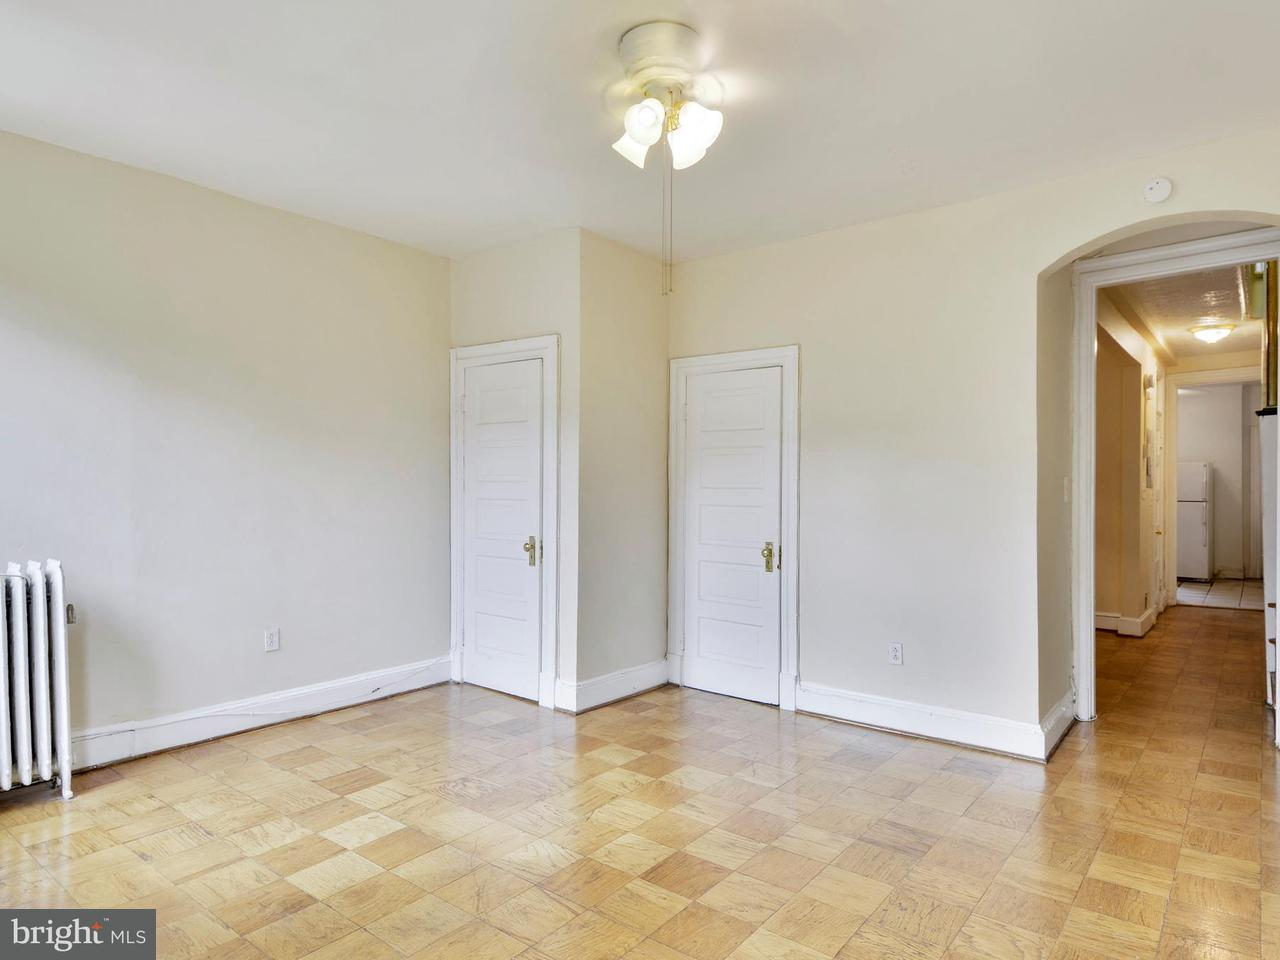 Additional photo for property listing at 1235 Girard St Nw 1235 Girard St Nw Washington, コロンビア特別区 20009 アメリカ合衆国